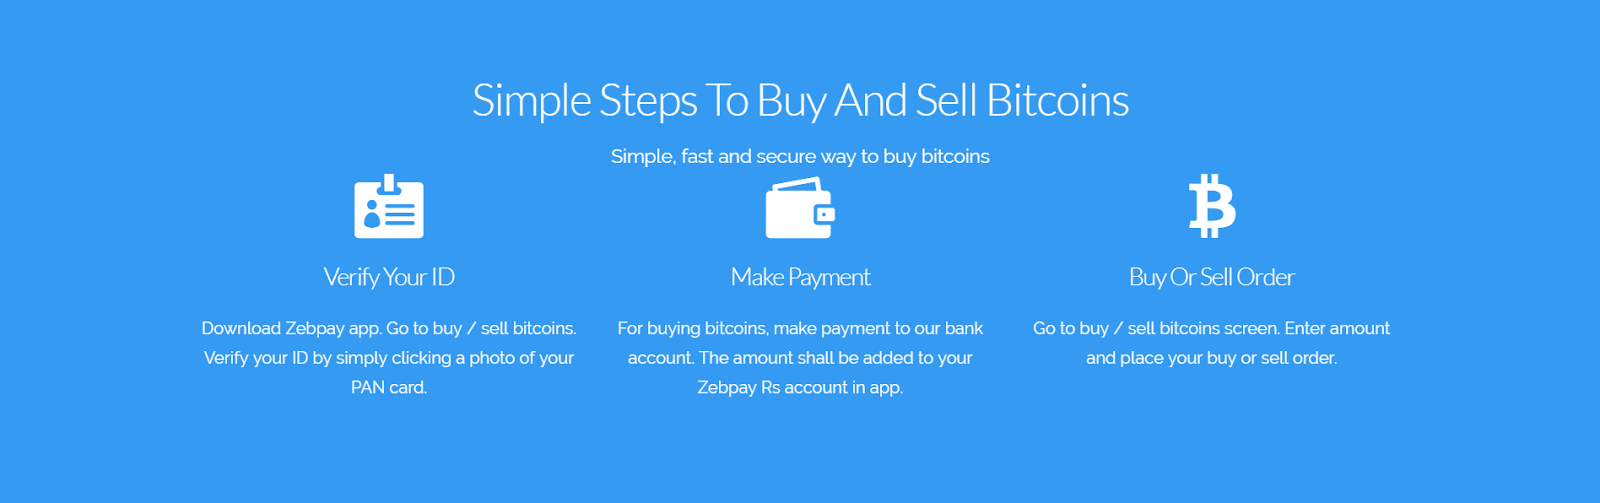 Bitcoin for beginners zebpay blog data on bitcoin valuation in the country there is a kyc requirement and you will need to verify your id by simply clicking a photo of your pan card ccuart Gallery